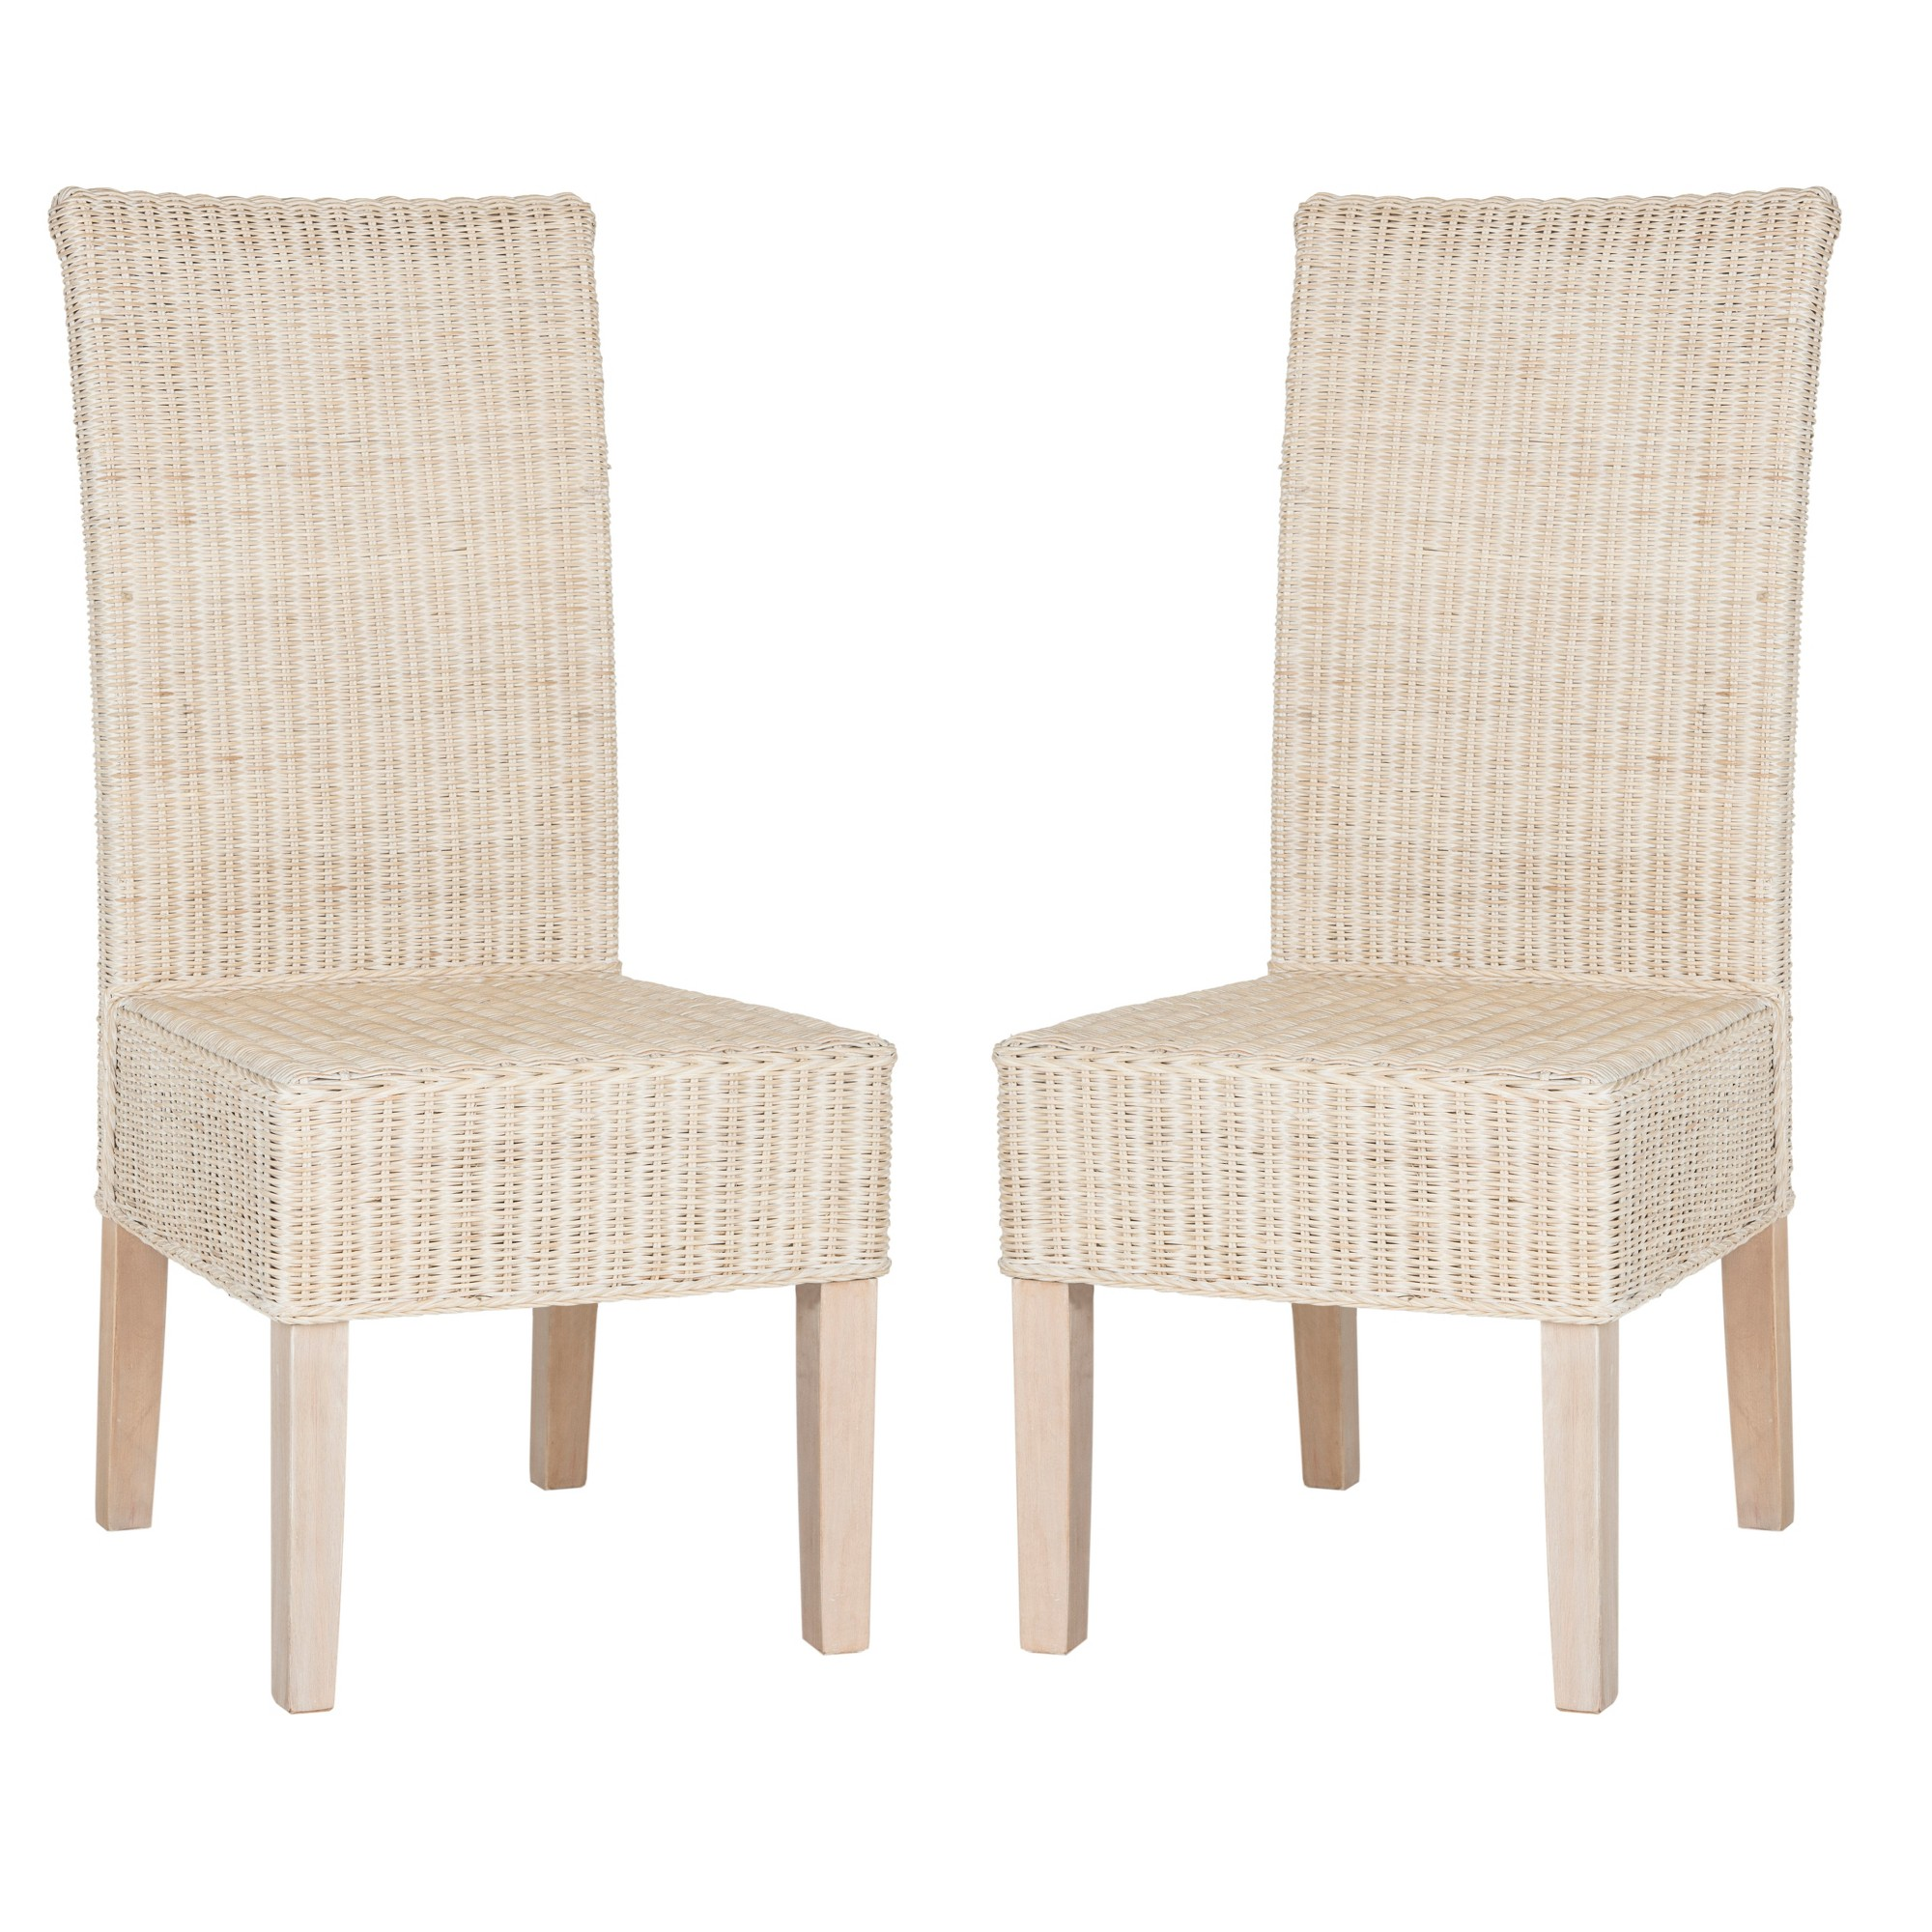 Set of 2 Arjun Wicker Dining Chair Washed White Safavieh